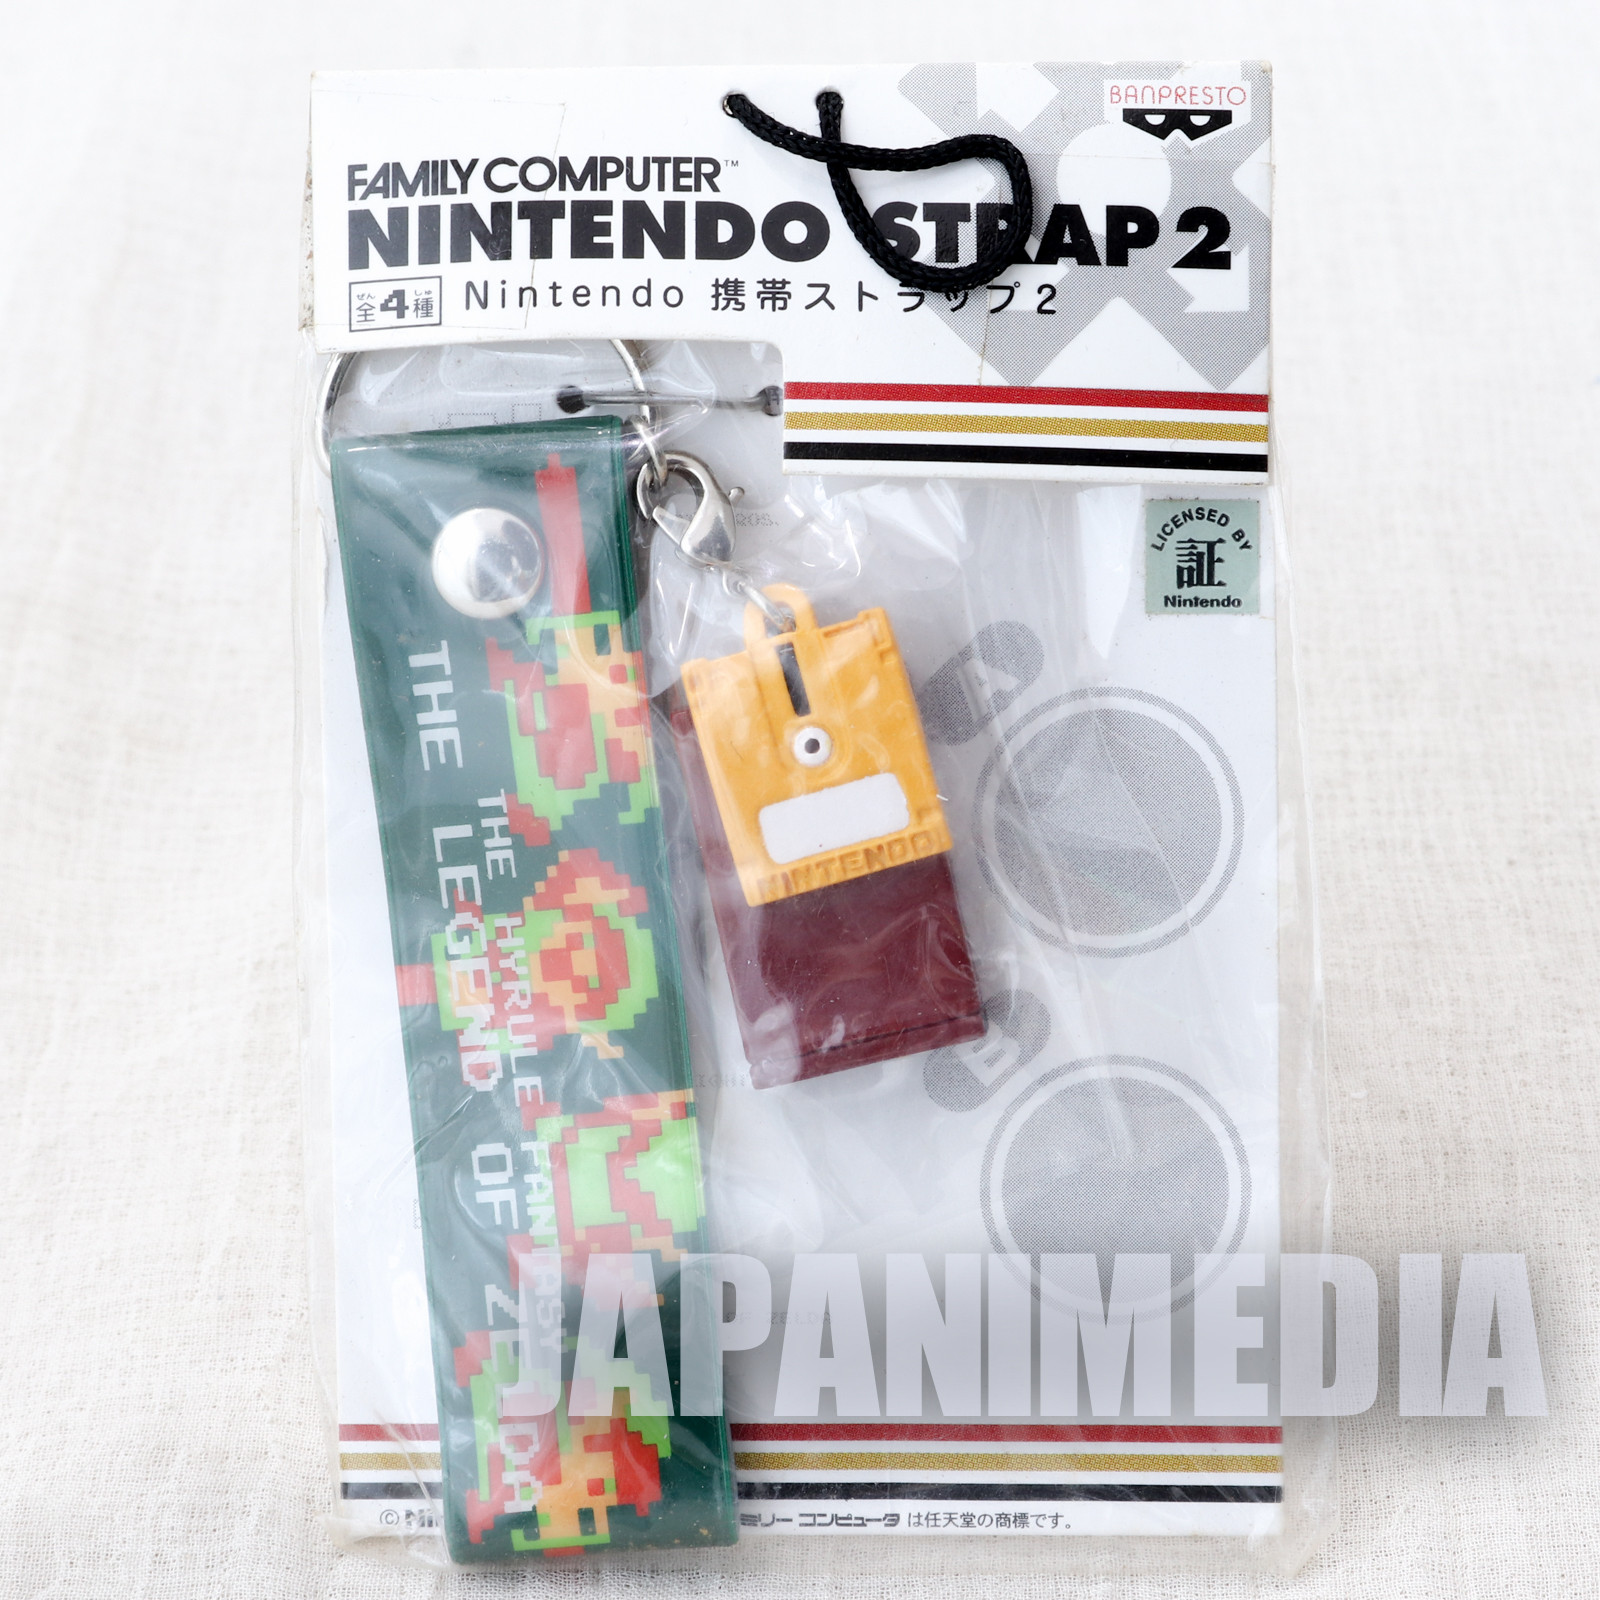 Nintendo Famicom Miniature Figure Strap Legend of Zelda Ver. JAPAN GAME NES 3